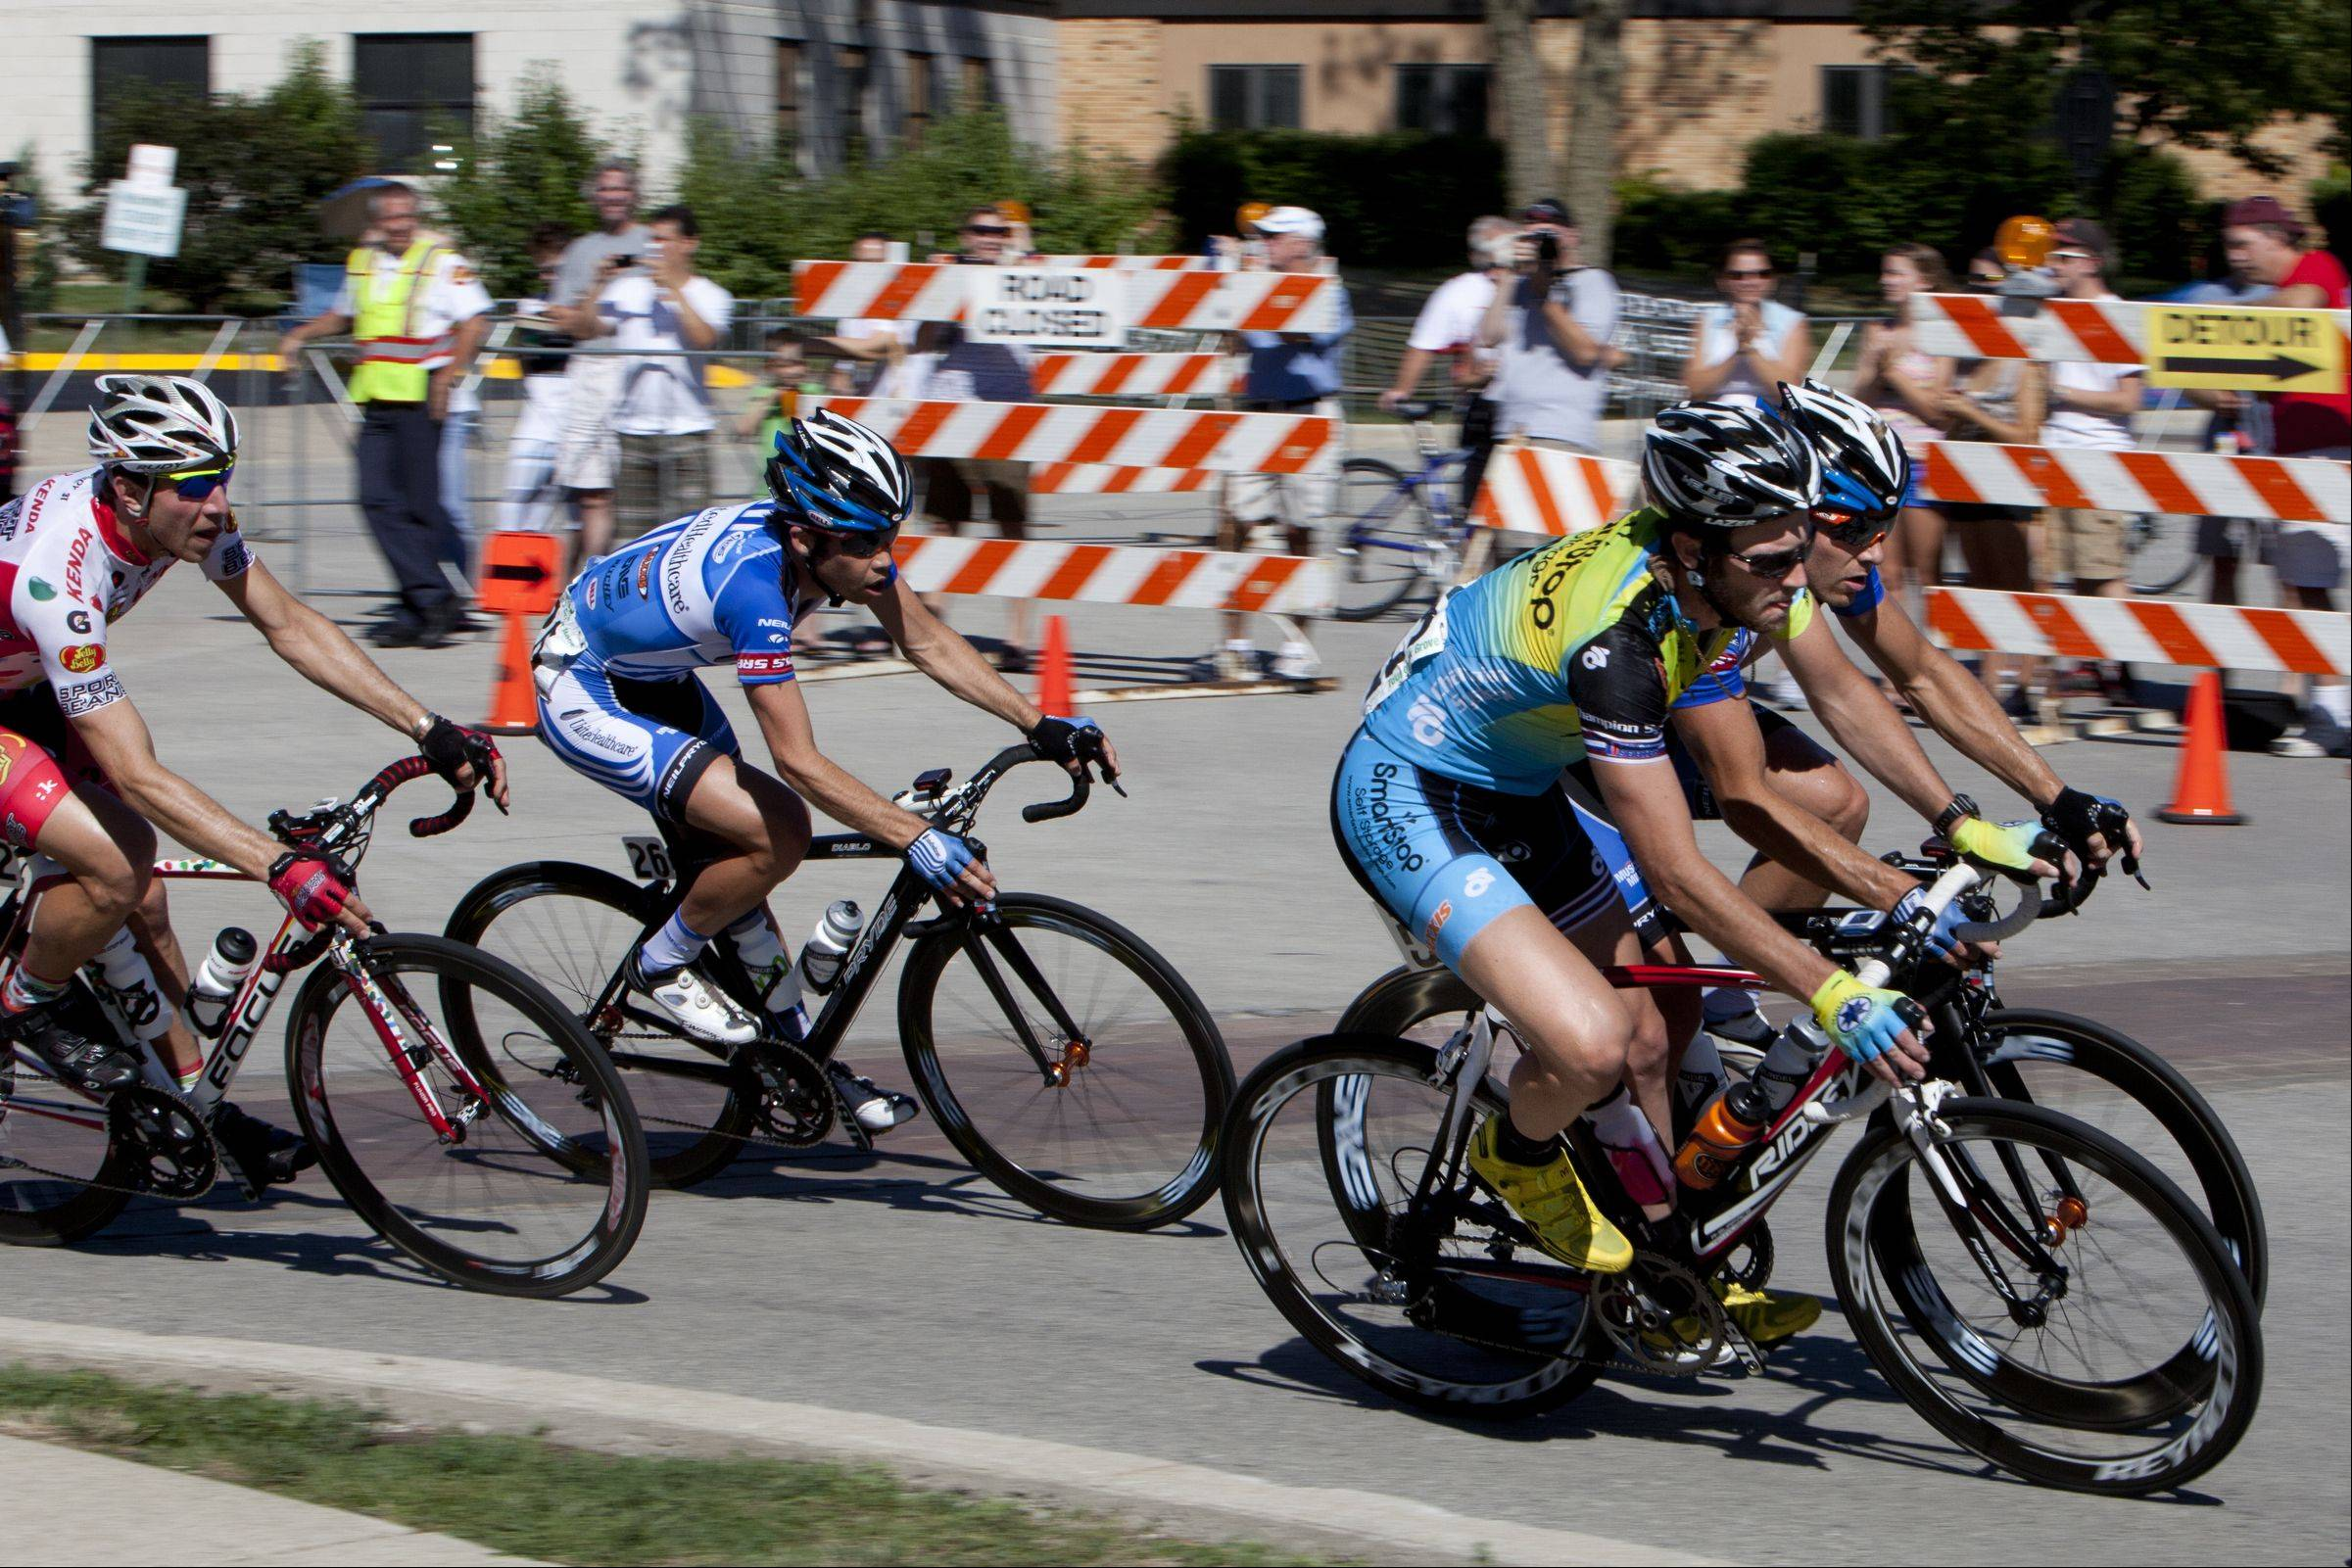 Men's pro cyclists in the third stage of the Tour of Elk Grove.